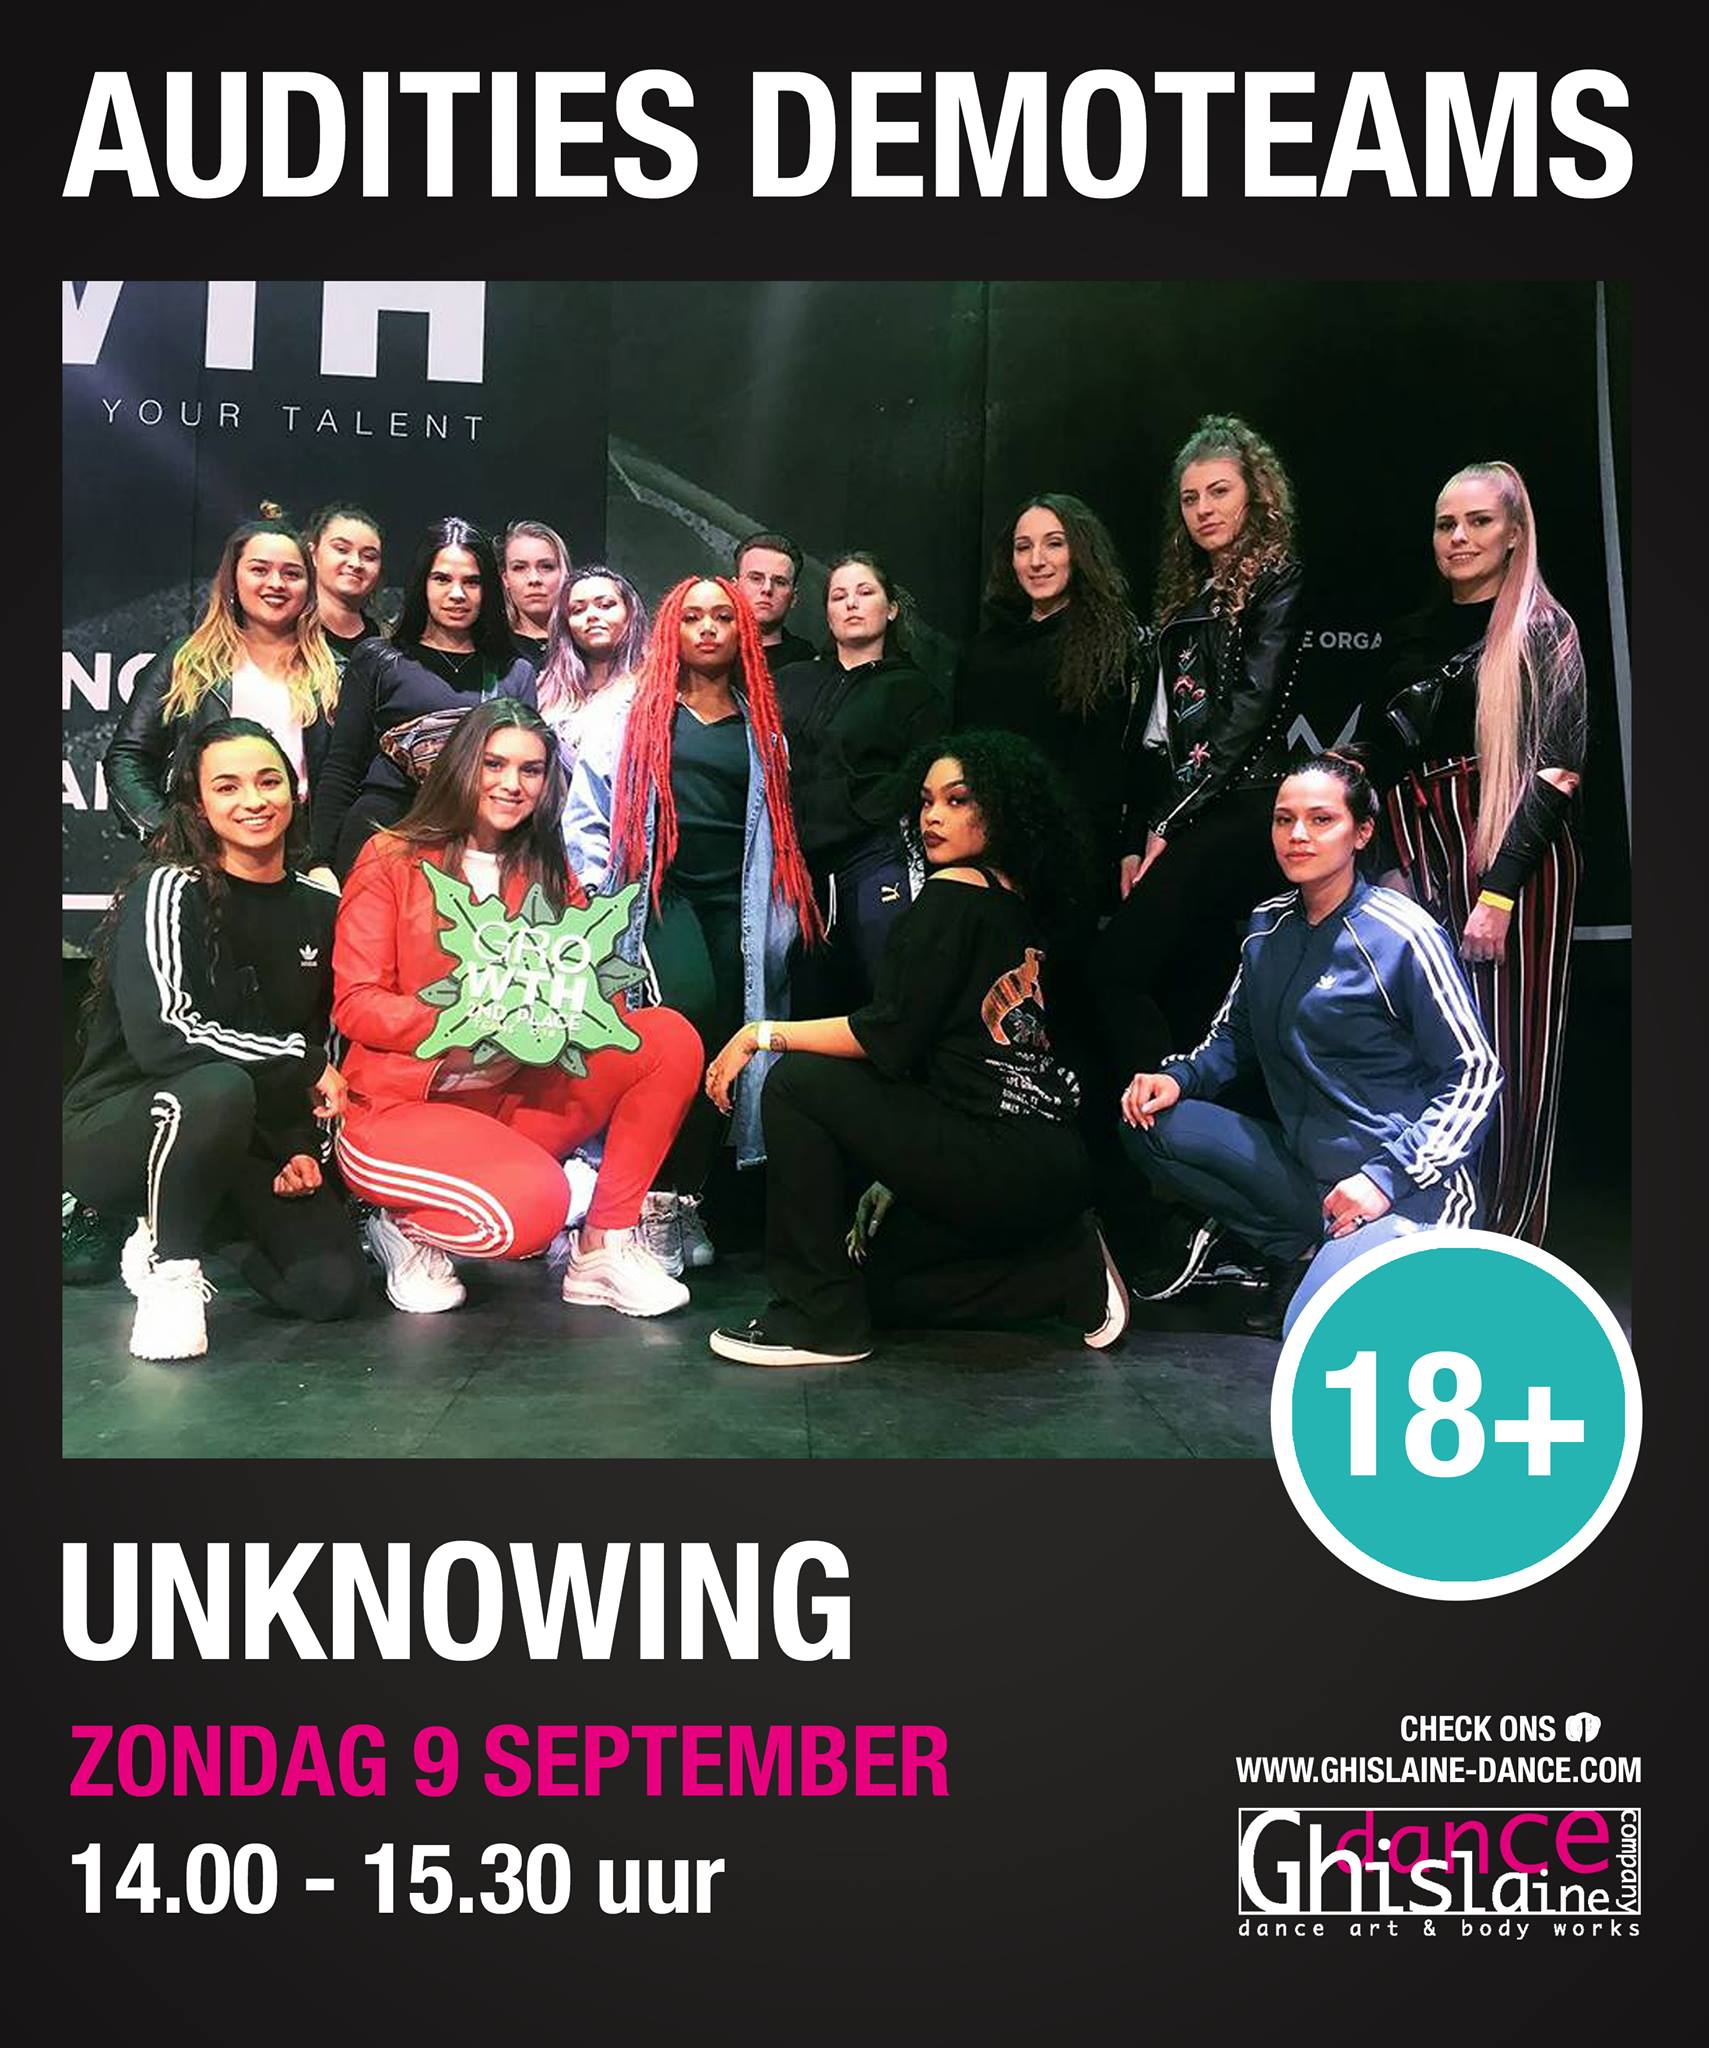 Auditie demoteam Unknowing Ghislaine Dance Company